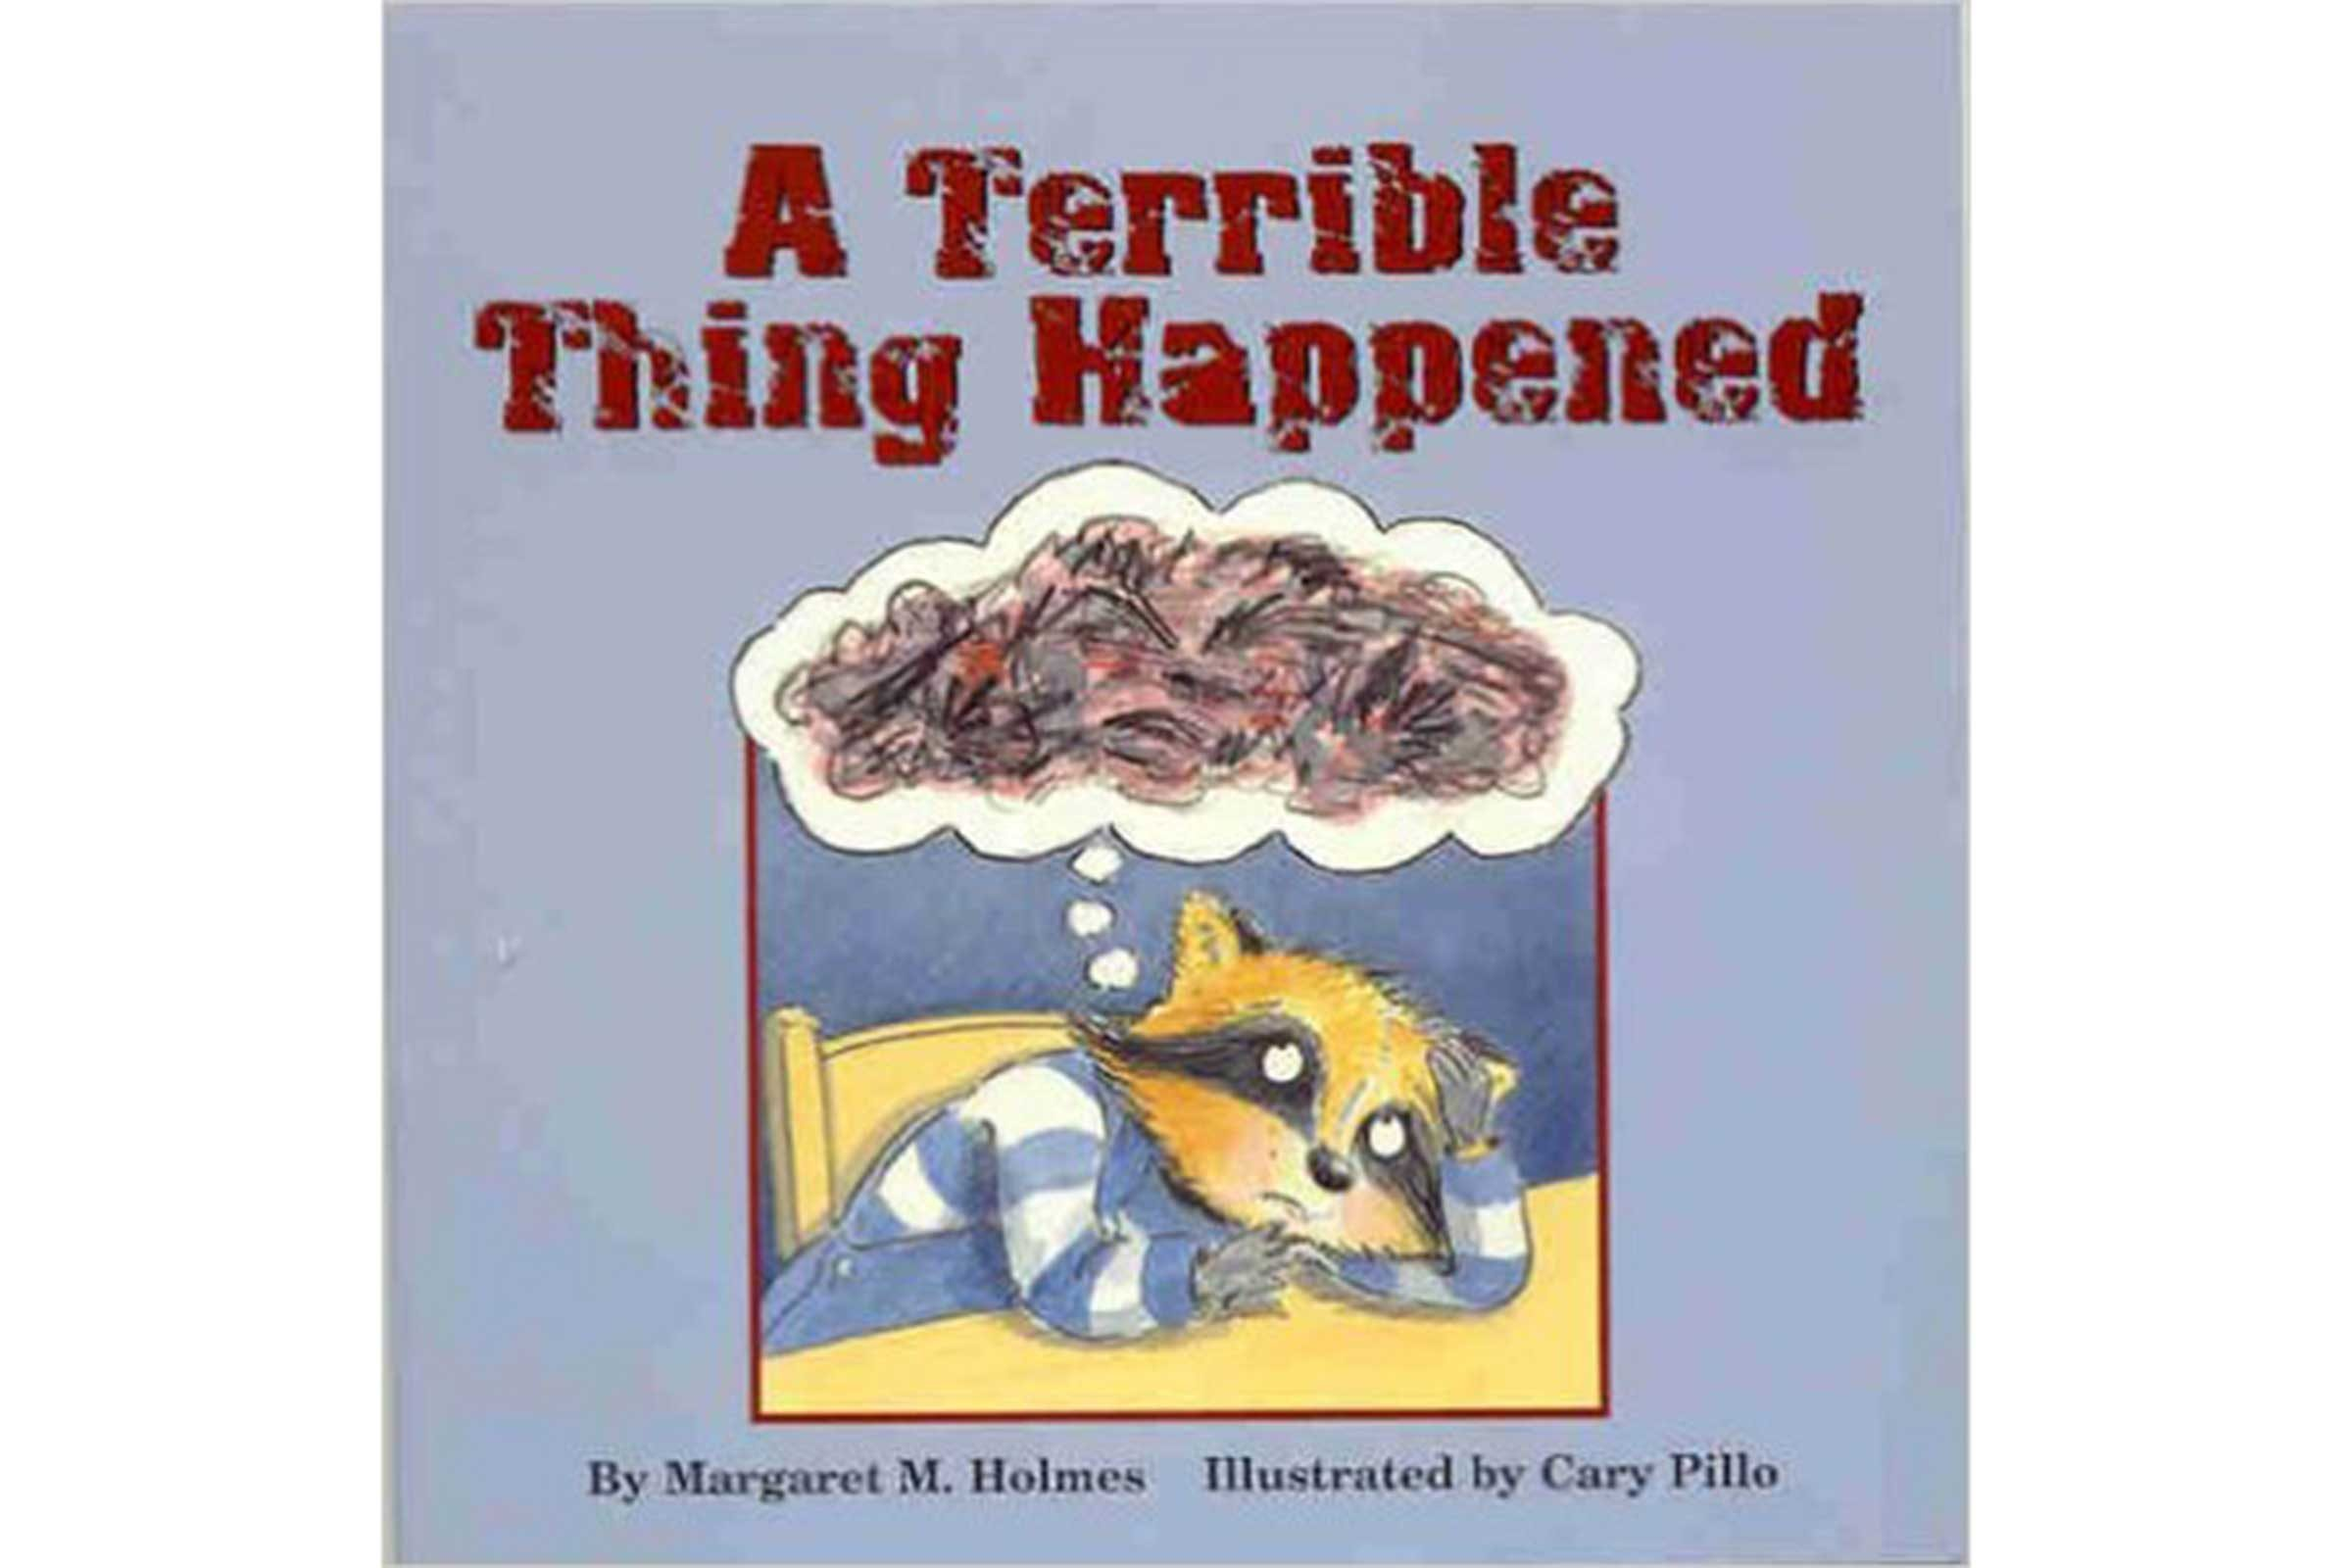 'A Terrible Thing Happened' by Margaret M. Holmes